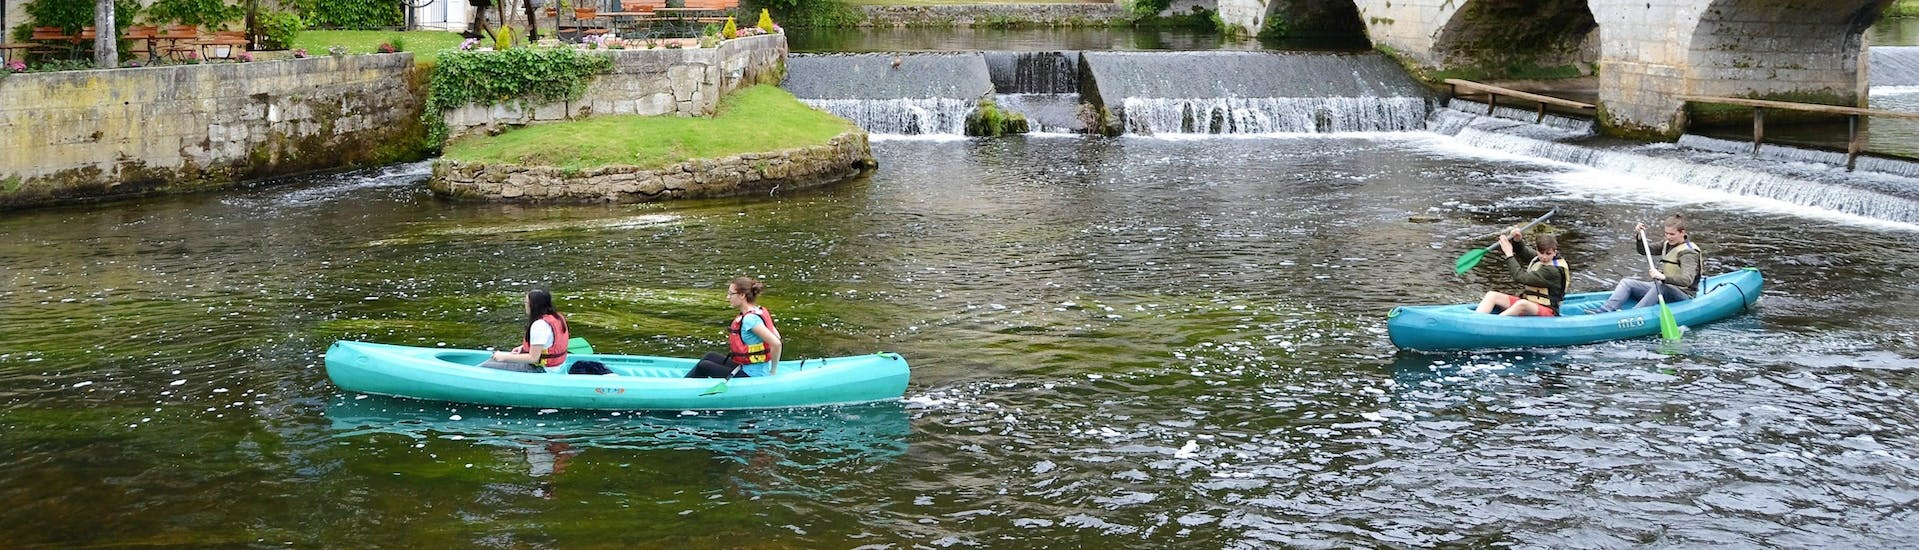 Friends are paddling on the Dronne river in the middle of the charming village of Brantome during their Fontaine d'Amour - 8km canoeing tour with Allo Canoës Dordogne.